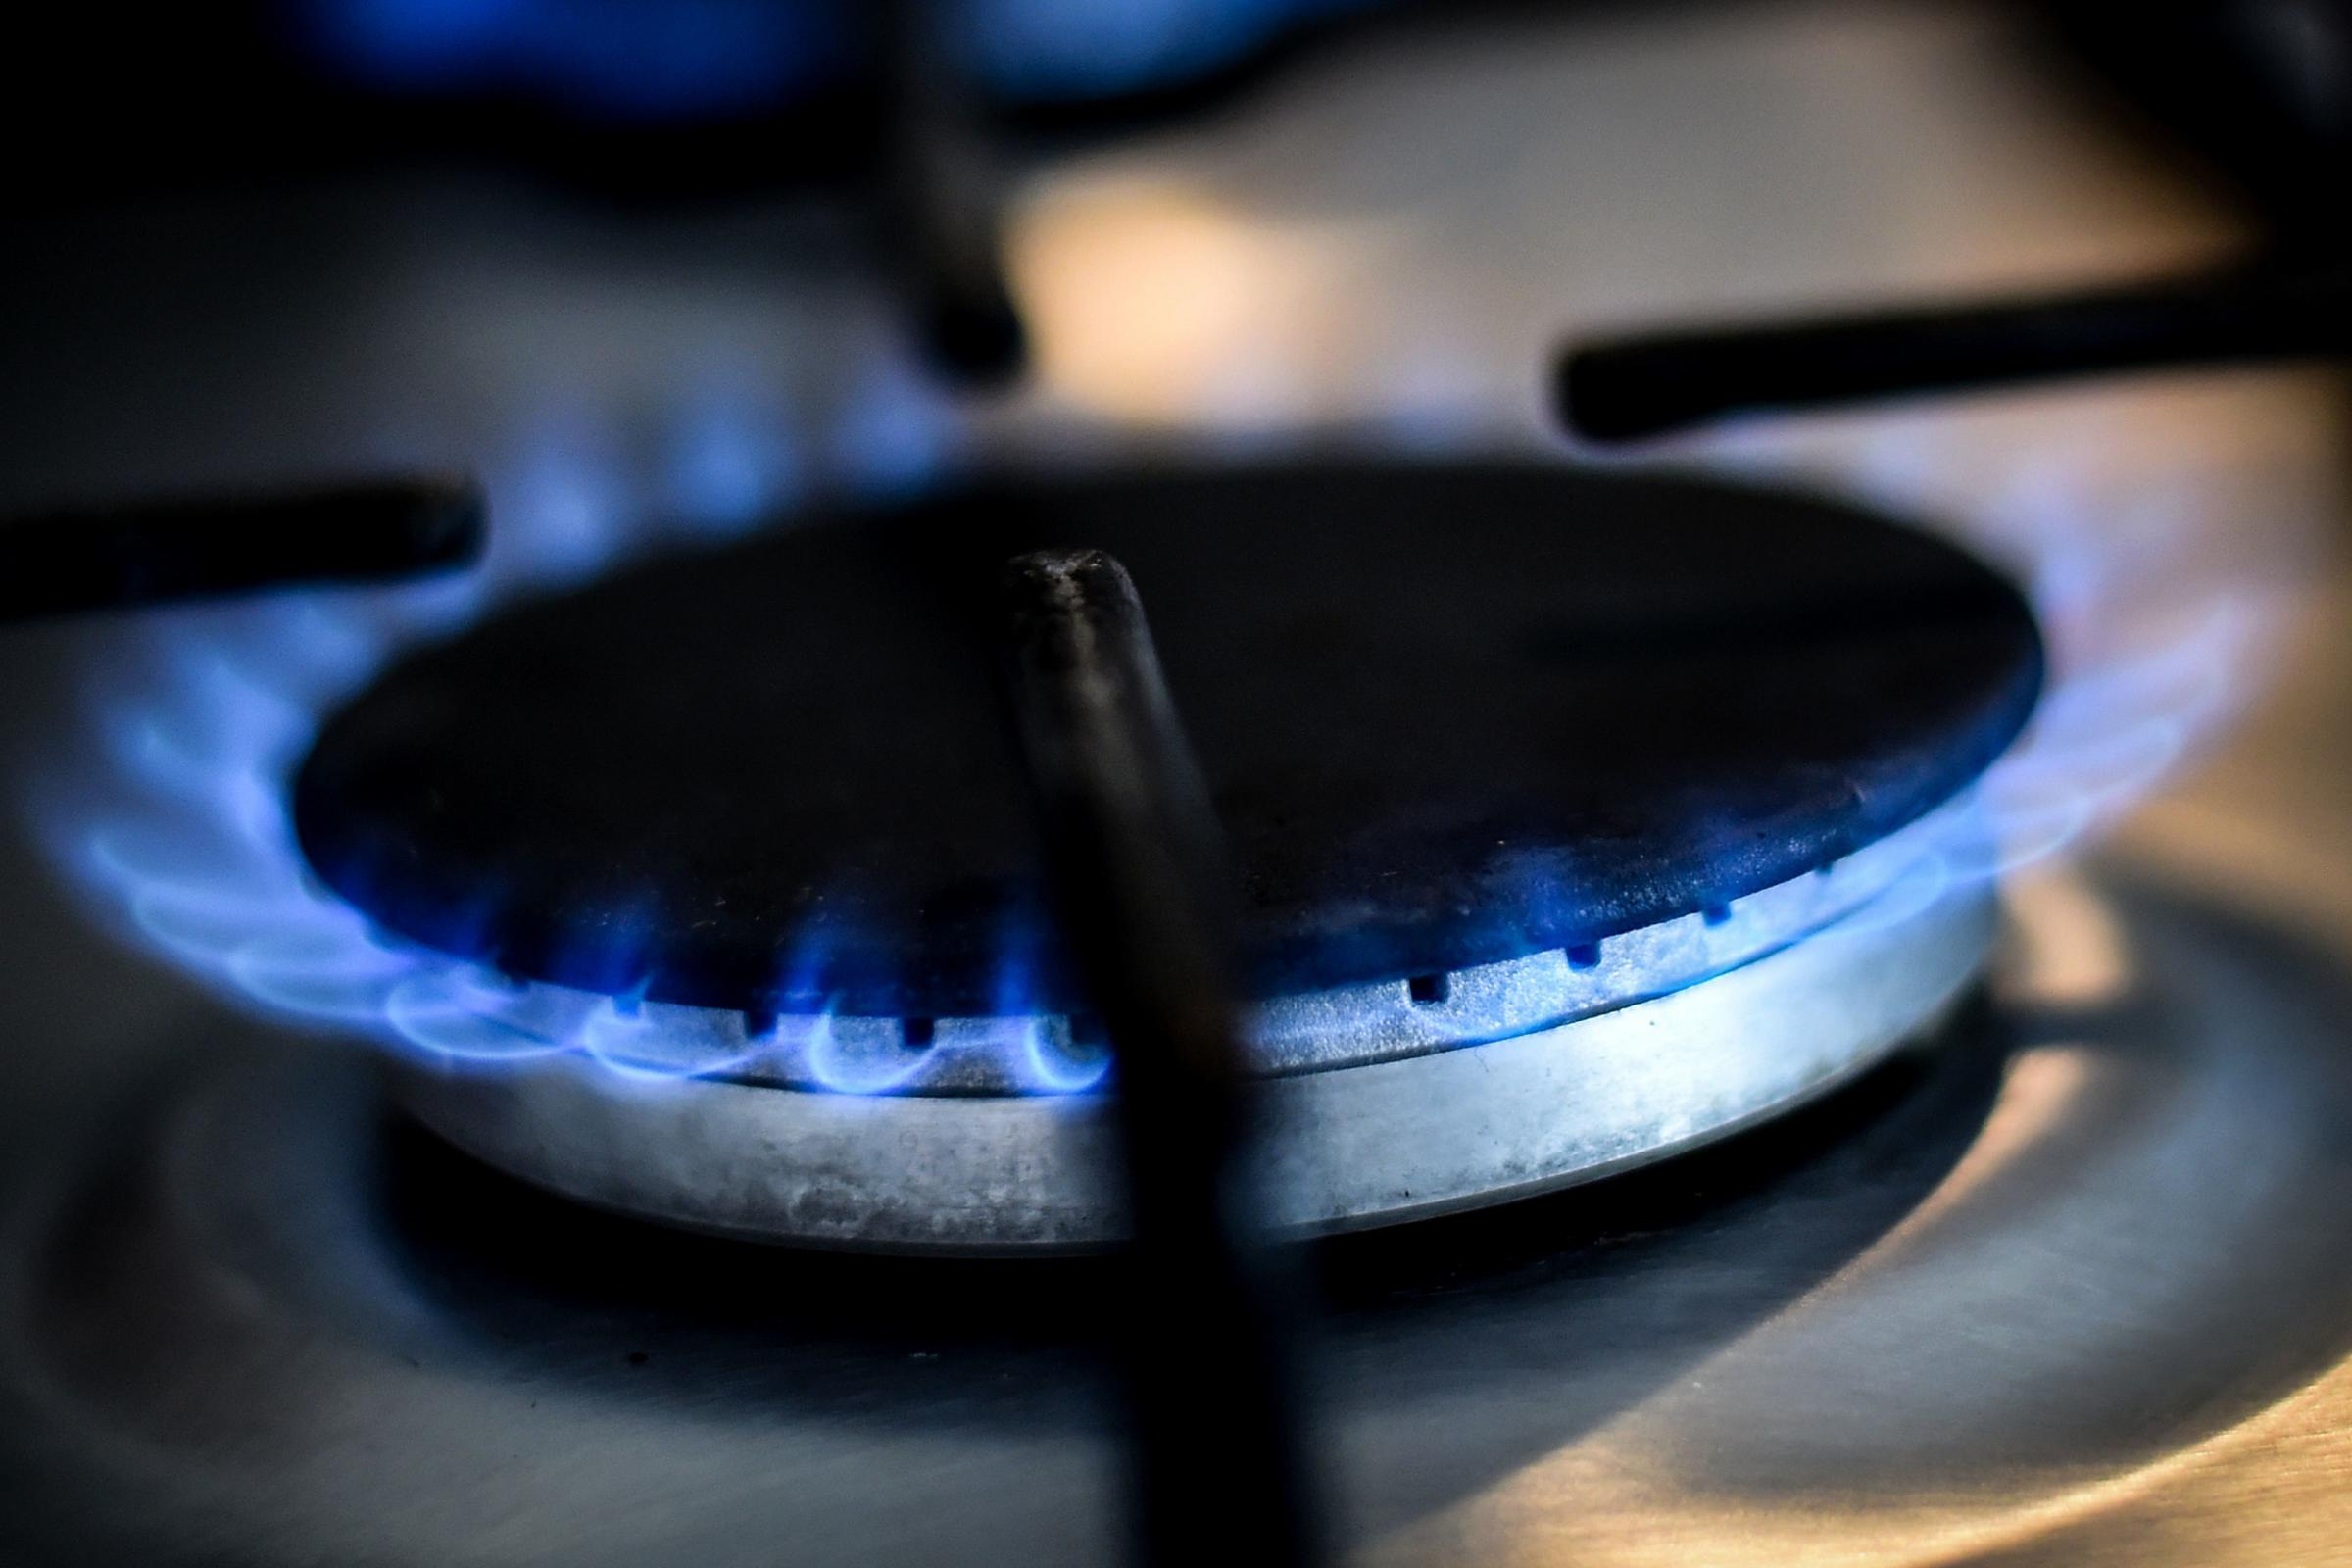 Inflation expected to rise as energy suppliers put up prices